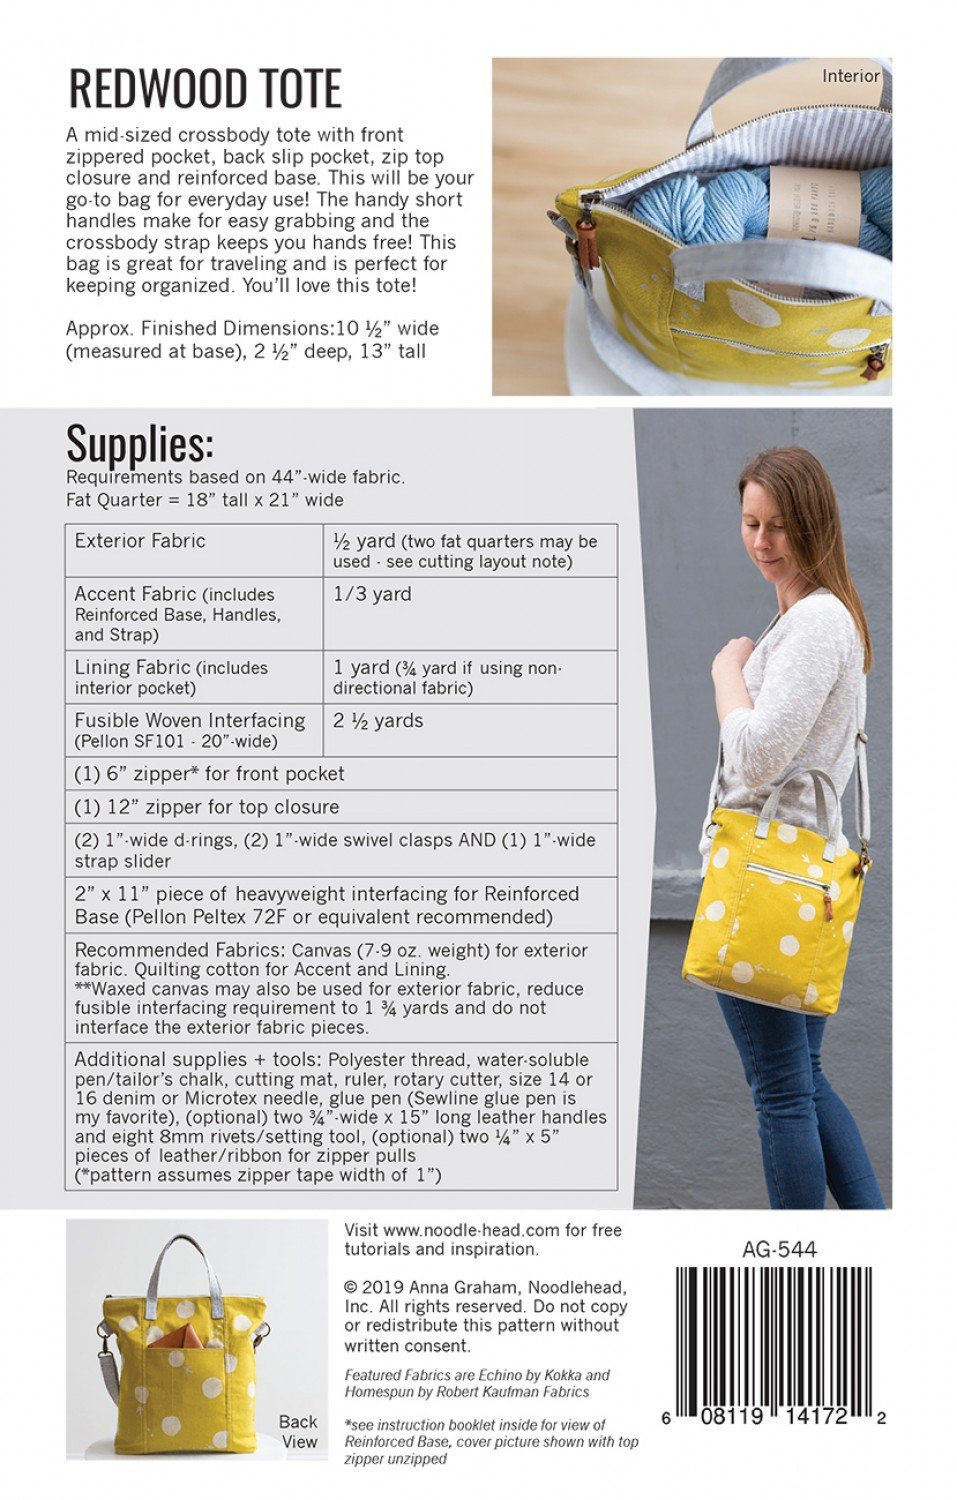 Redwood Tote Kit with Ruby Star Fabrics